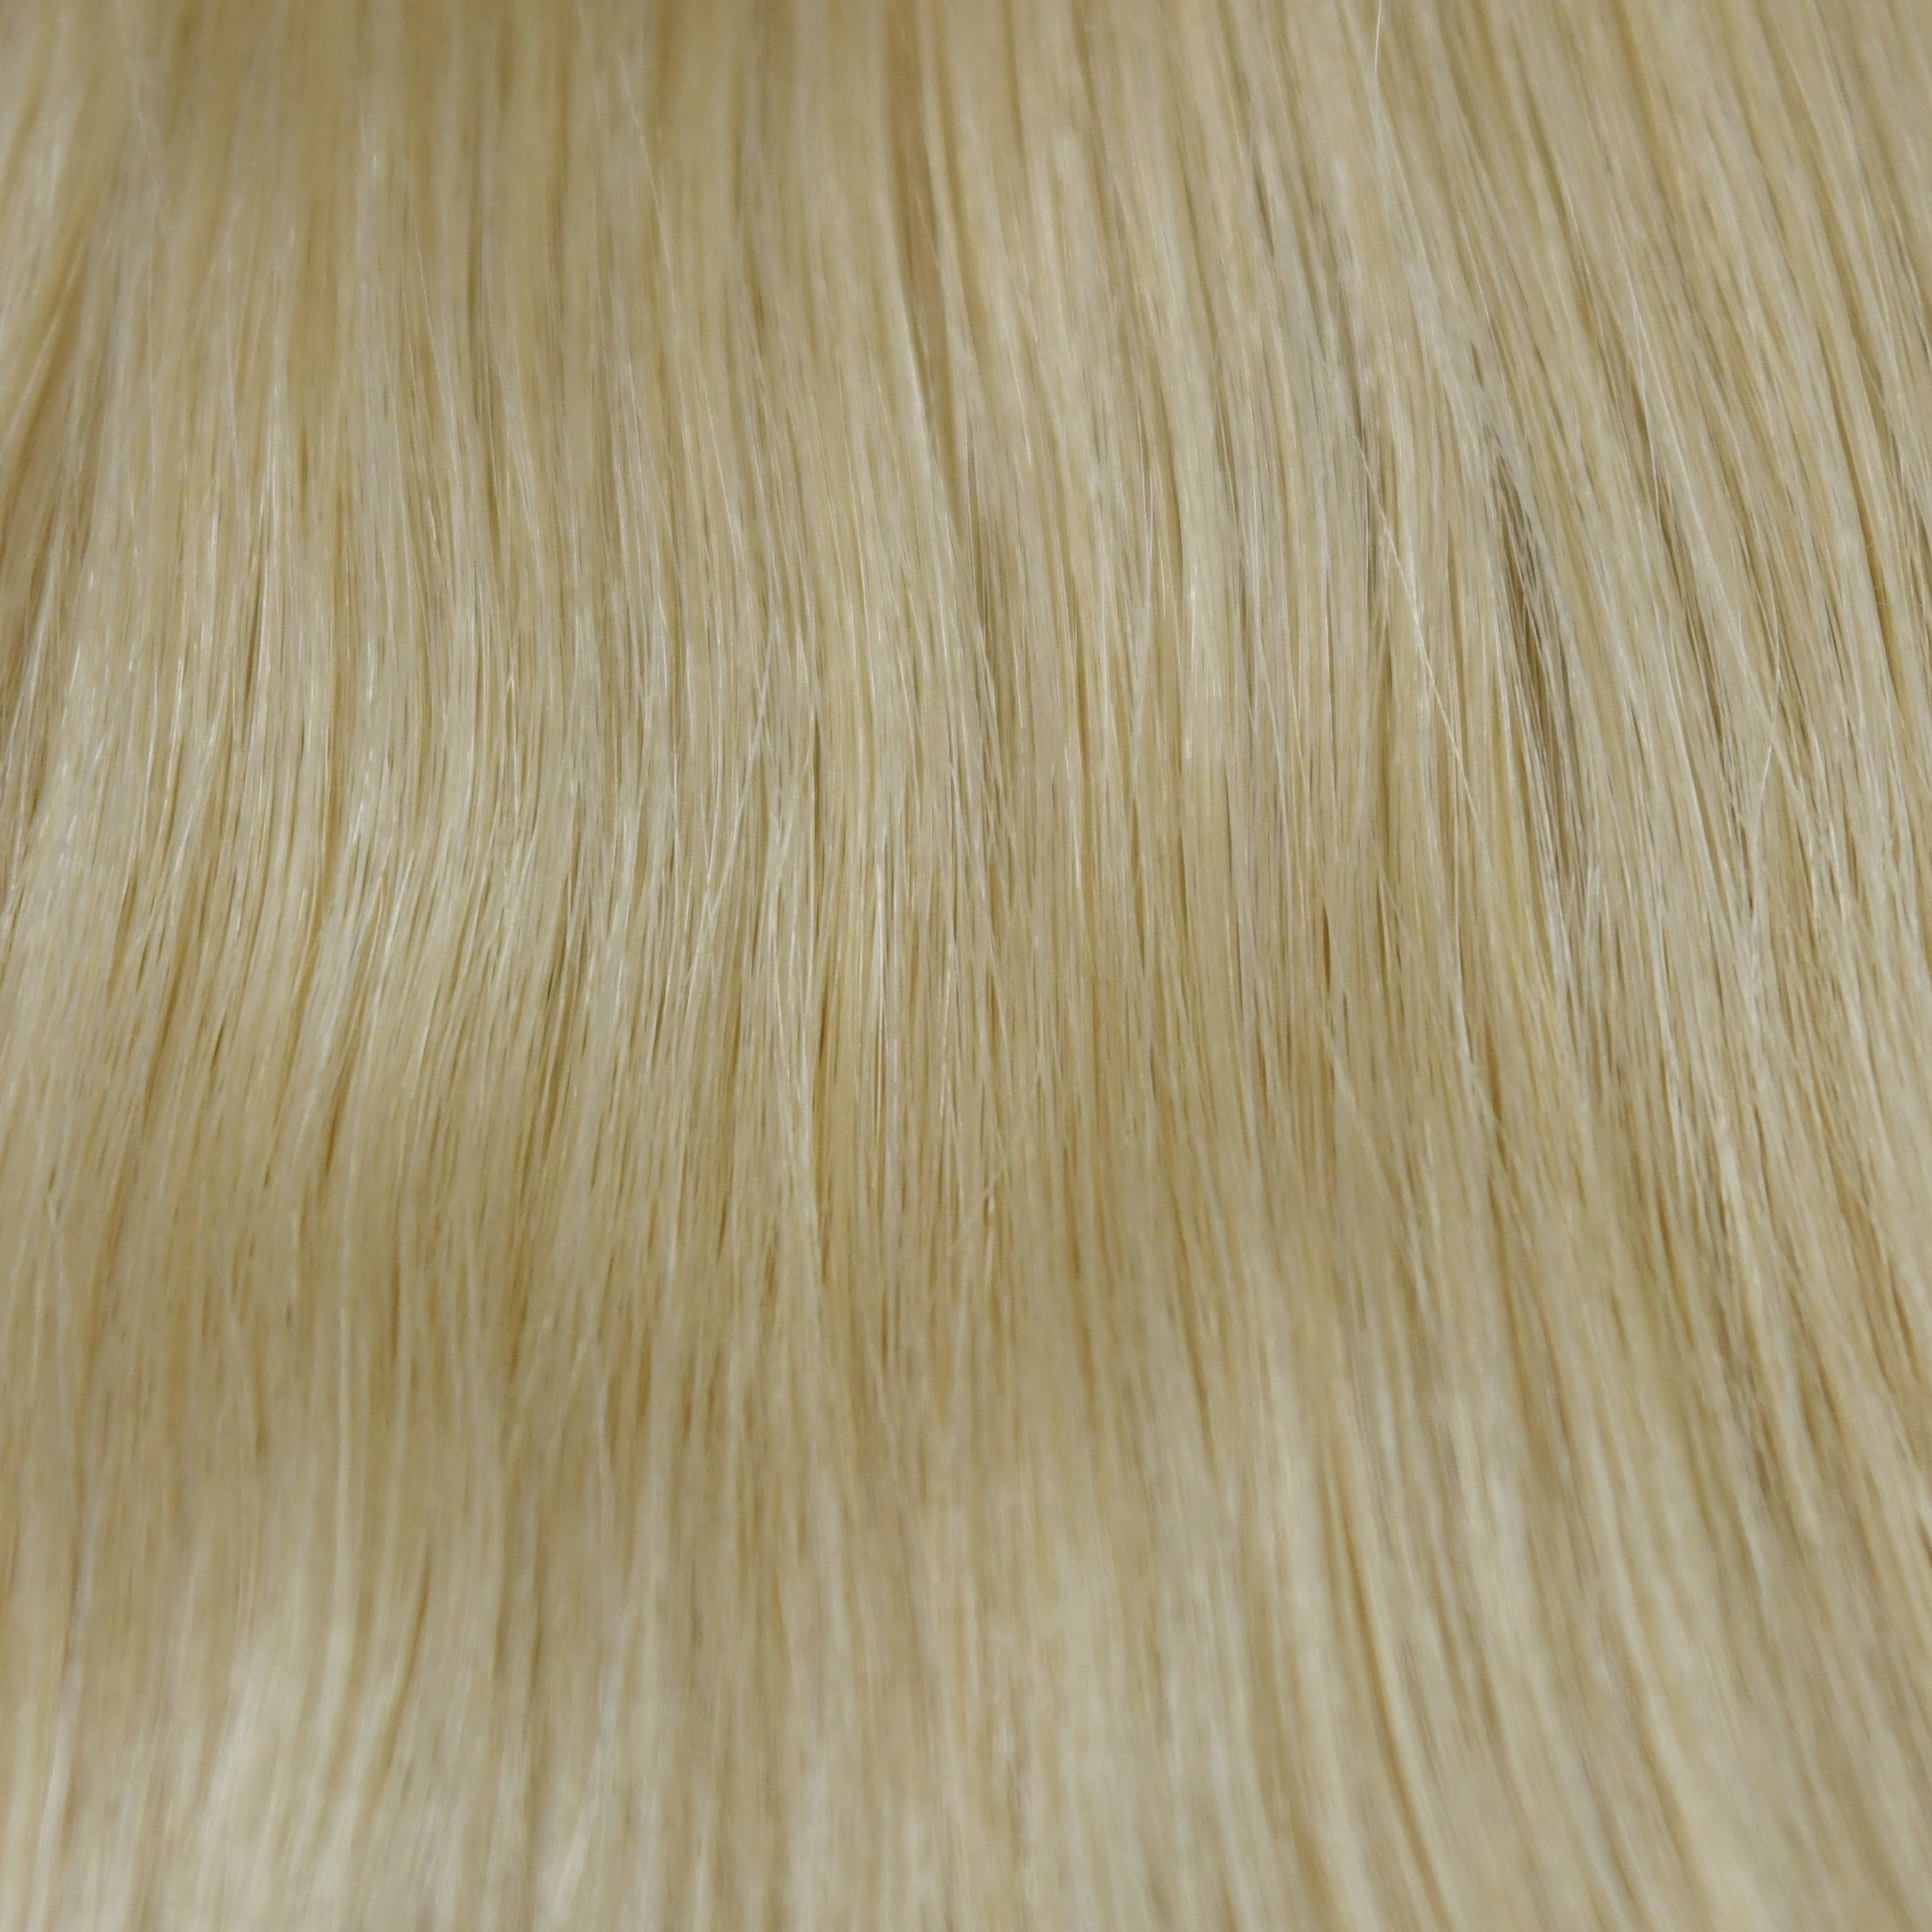 light golden Blonde hair help to choose hair extensions color in hair color chart